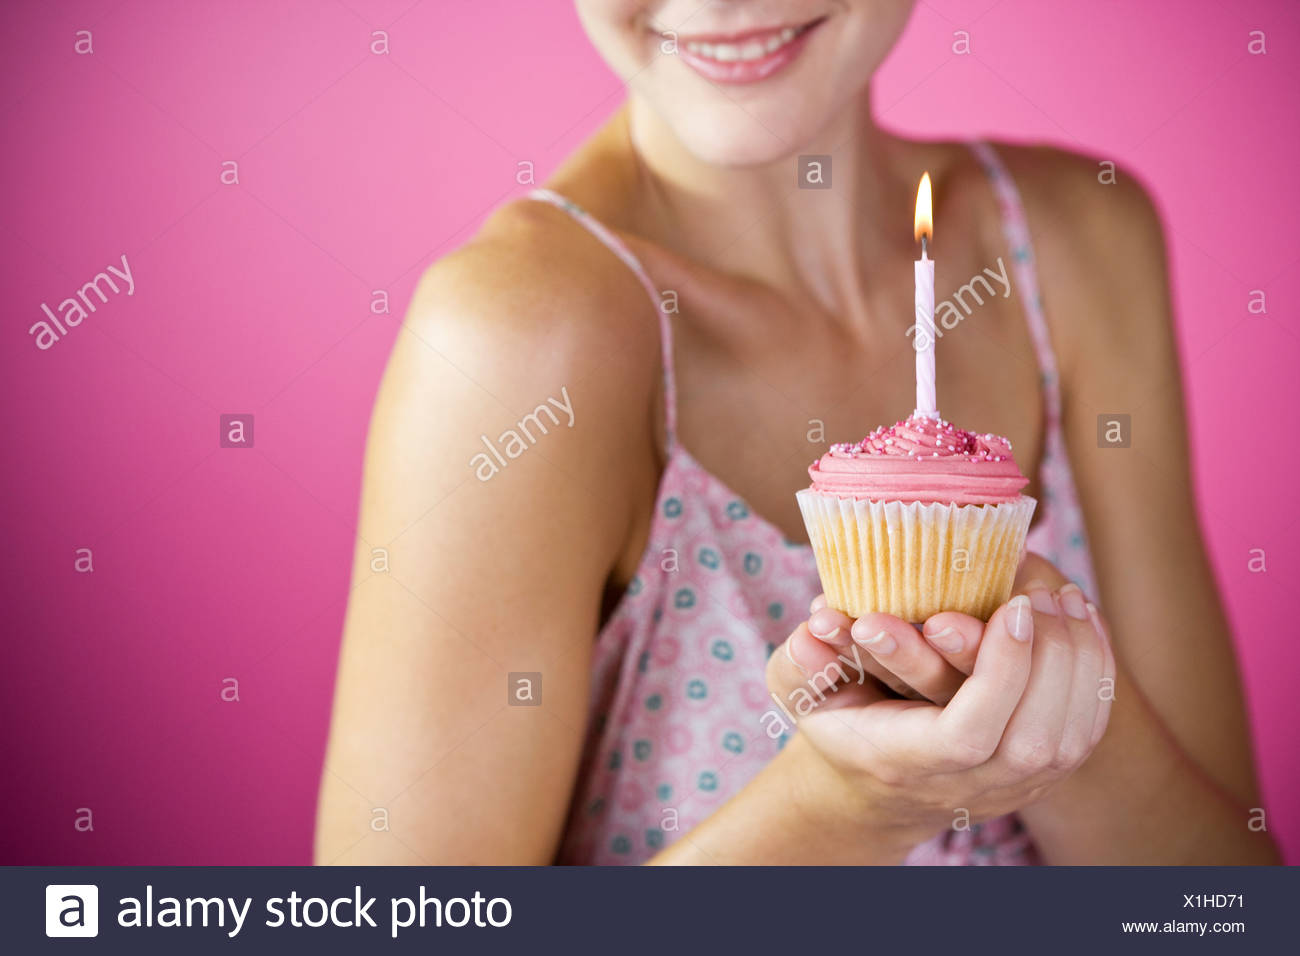 A Young Woman Holding A Birthday Cake With A Candle - Stock Image